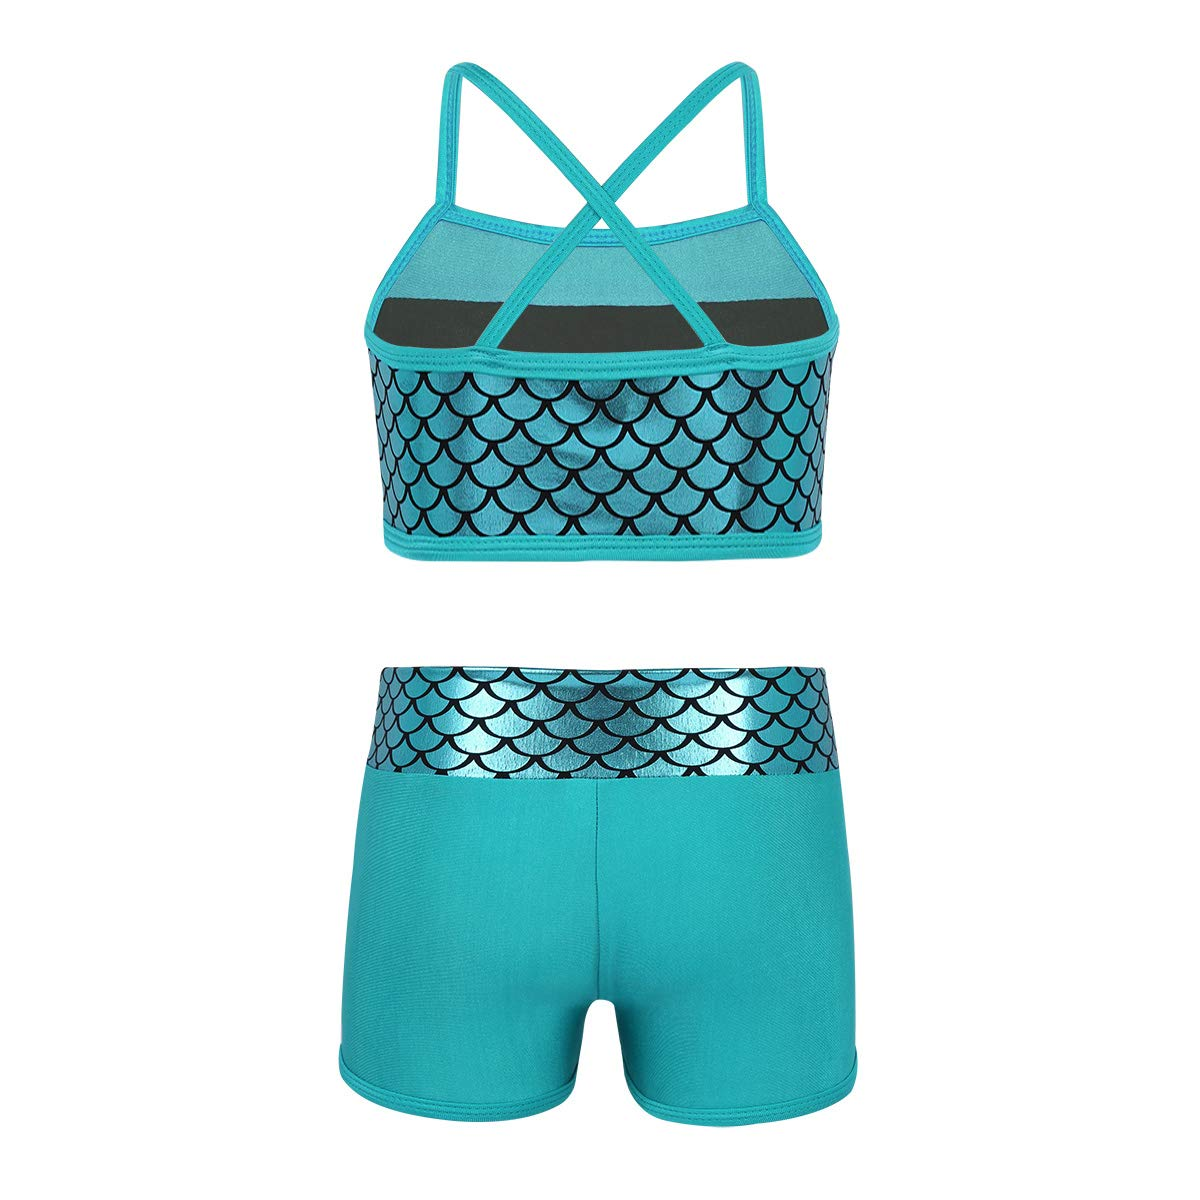 a25fa2360dc TiaoBug Kids Girls Sequins Mermaid Tank Top with Shorts Dance Outfit  Gymnastics Dancing Costume Swimwear